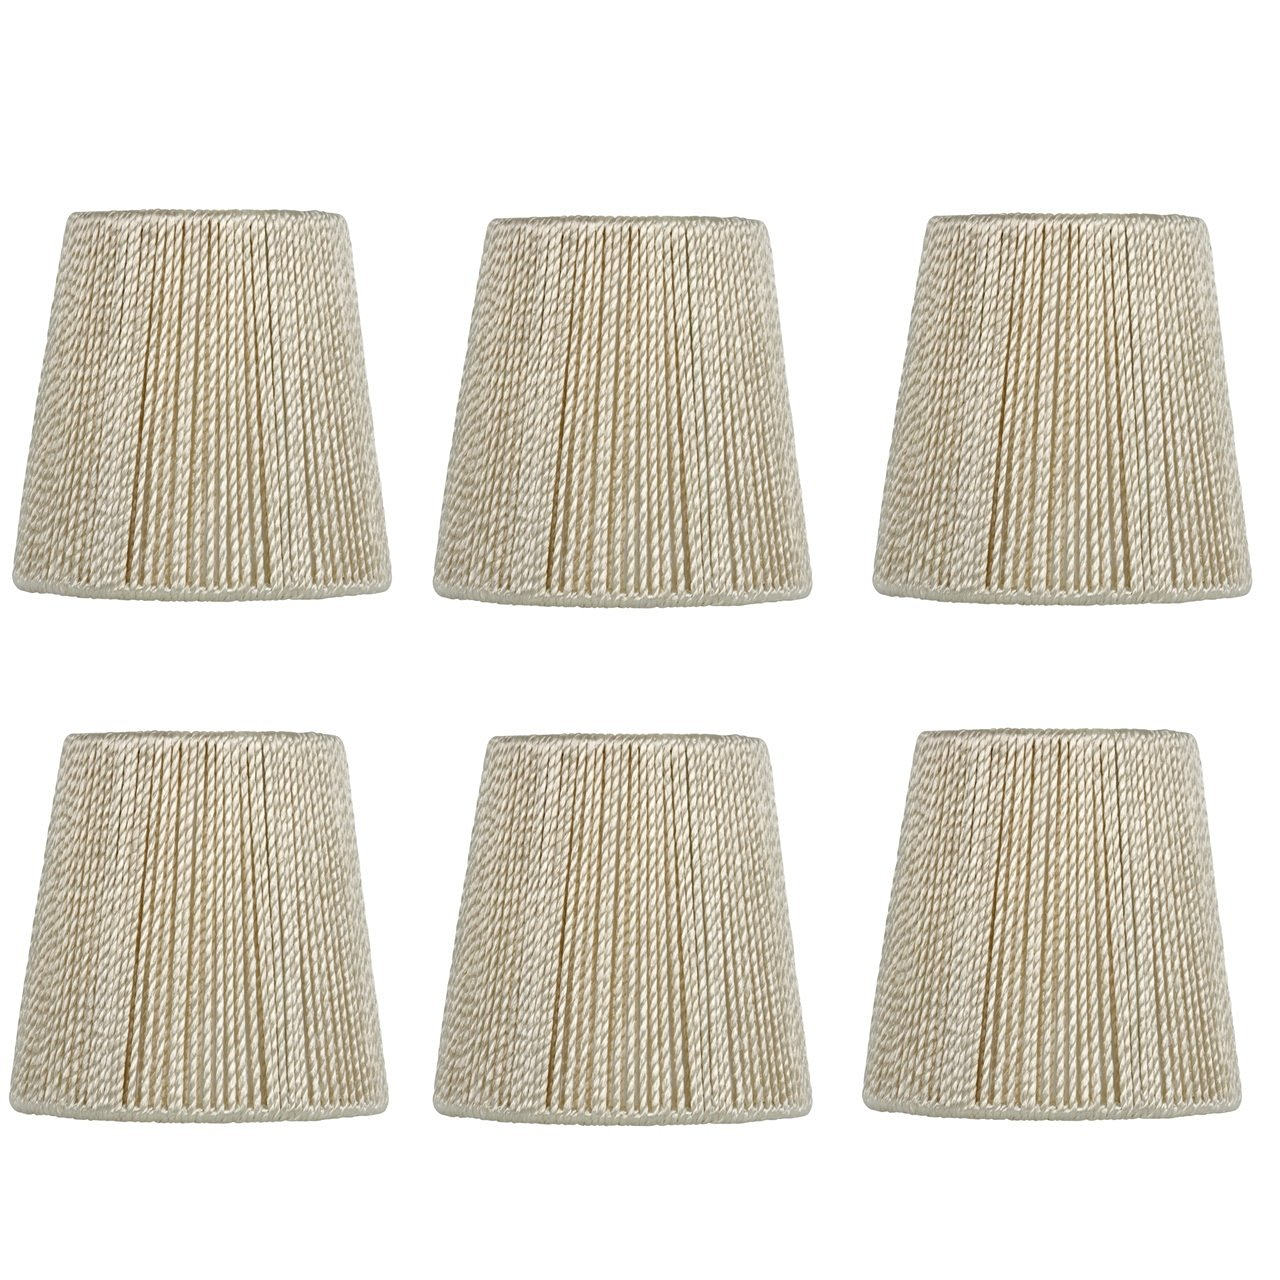 Upgradelights 4 Inch Hand Strung Retro Drum Clip On Chandelier Lamp Shades (Set of six) 3x4x4